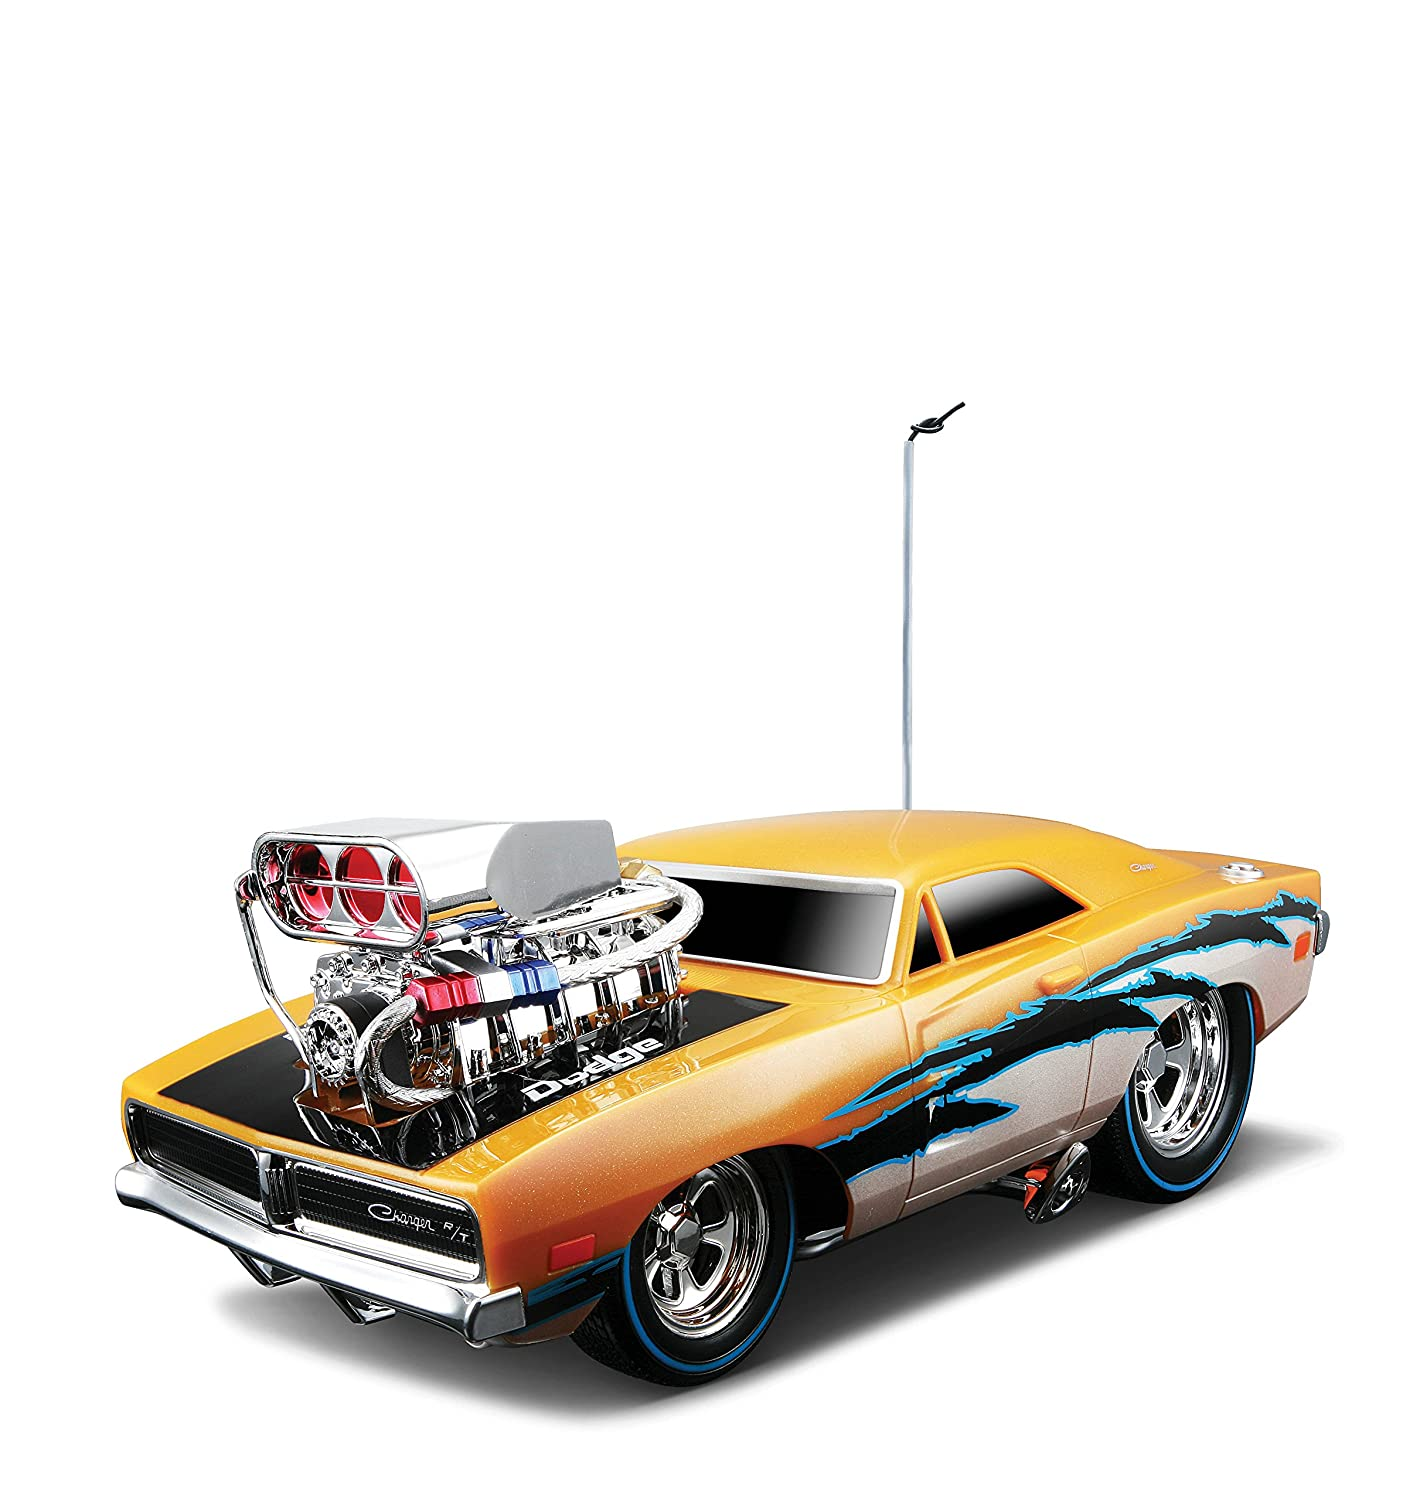 Stunning Rc Car Dodge Charger – Aratorn Sport Cars